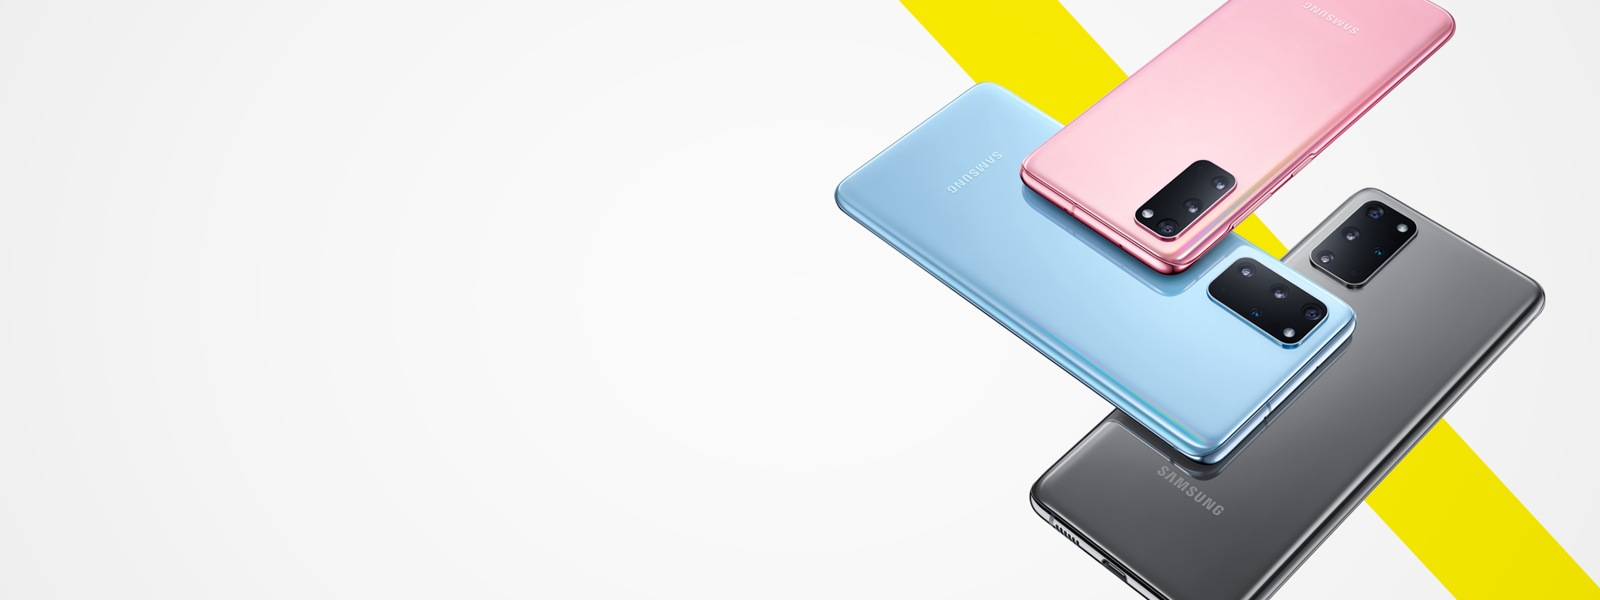 Samsung S20 in various colors featured for Back to School 2020